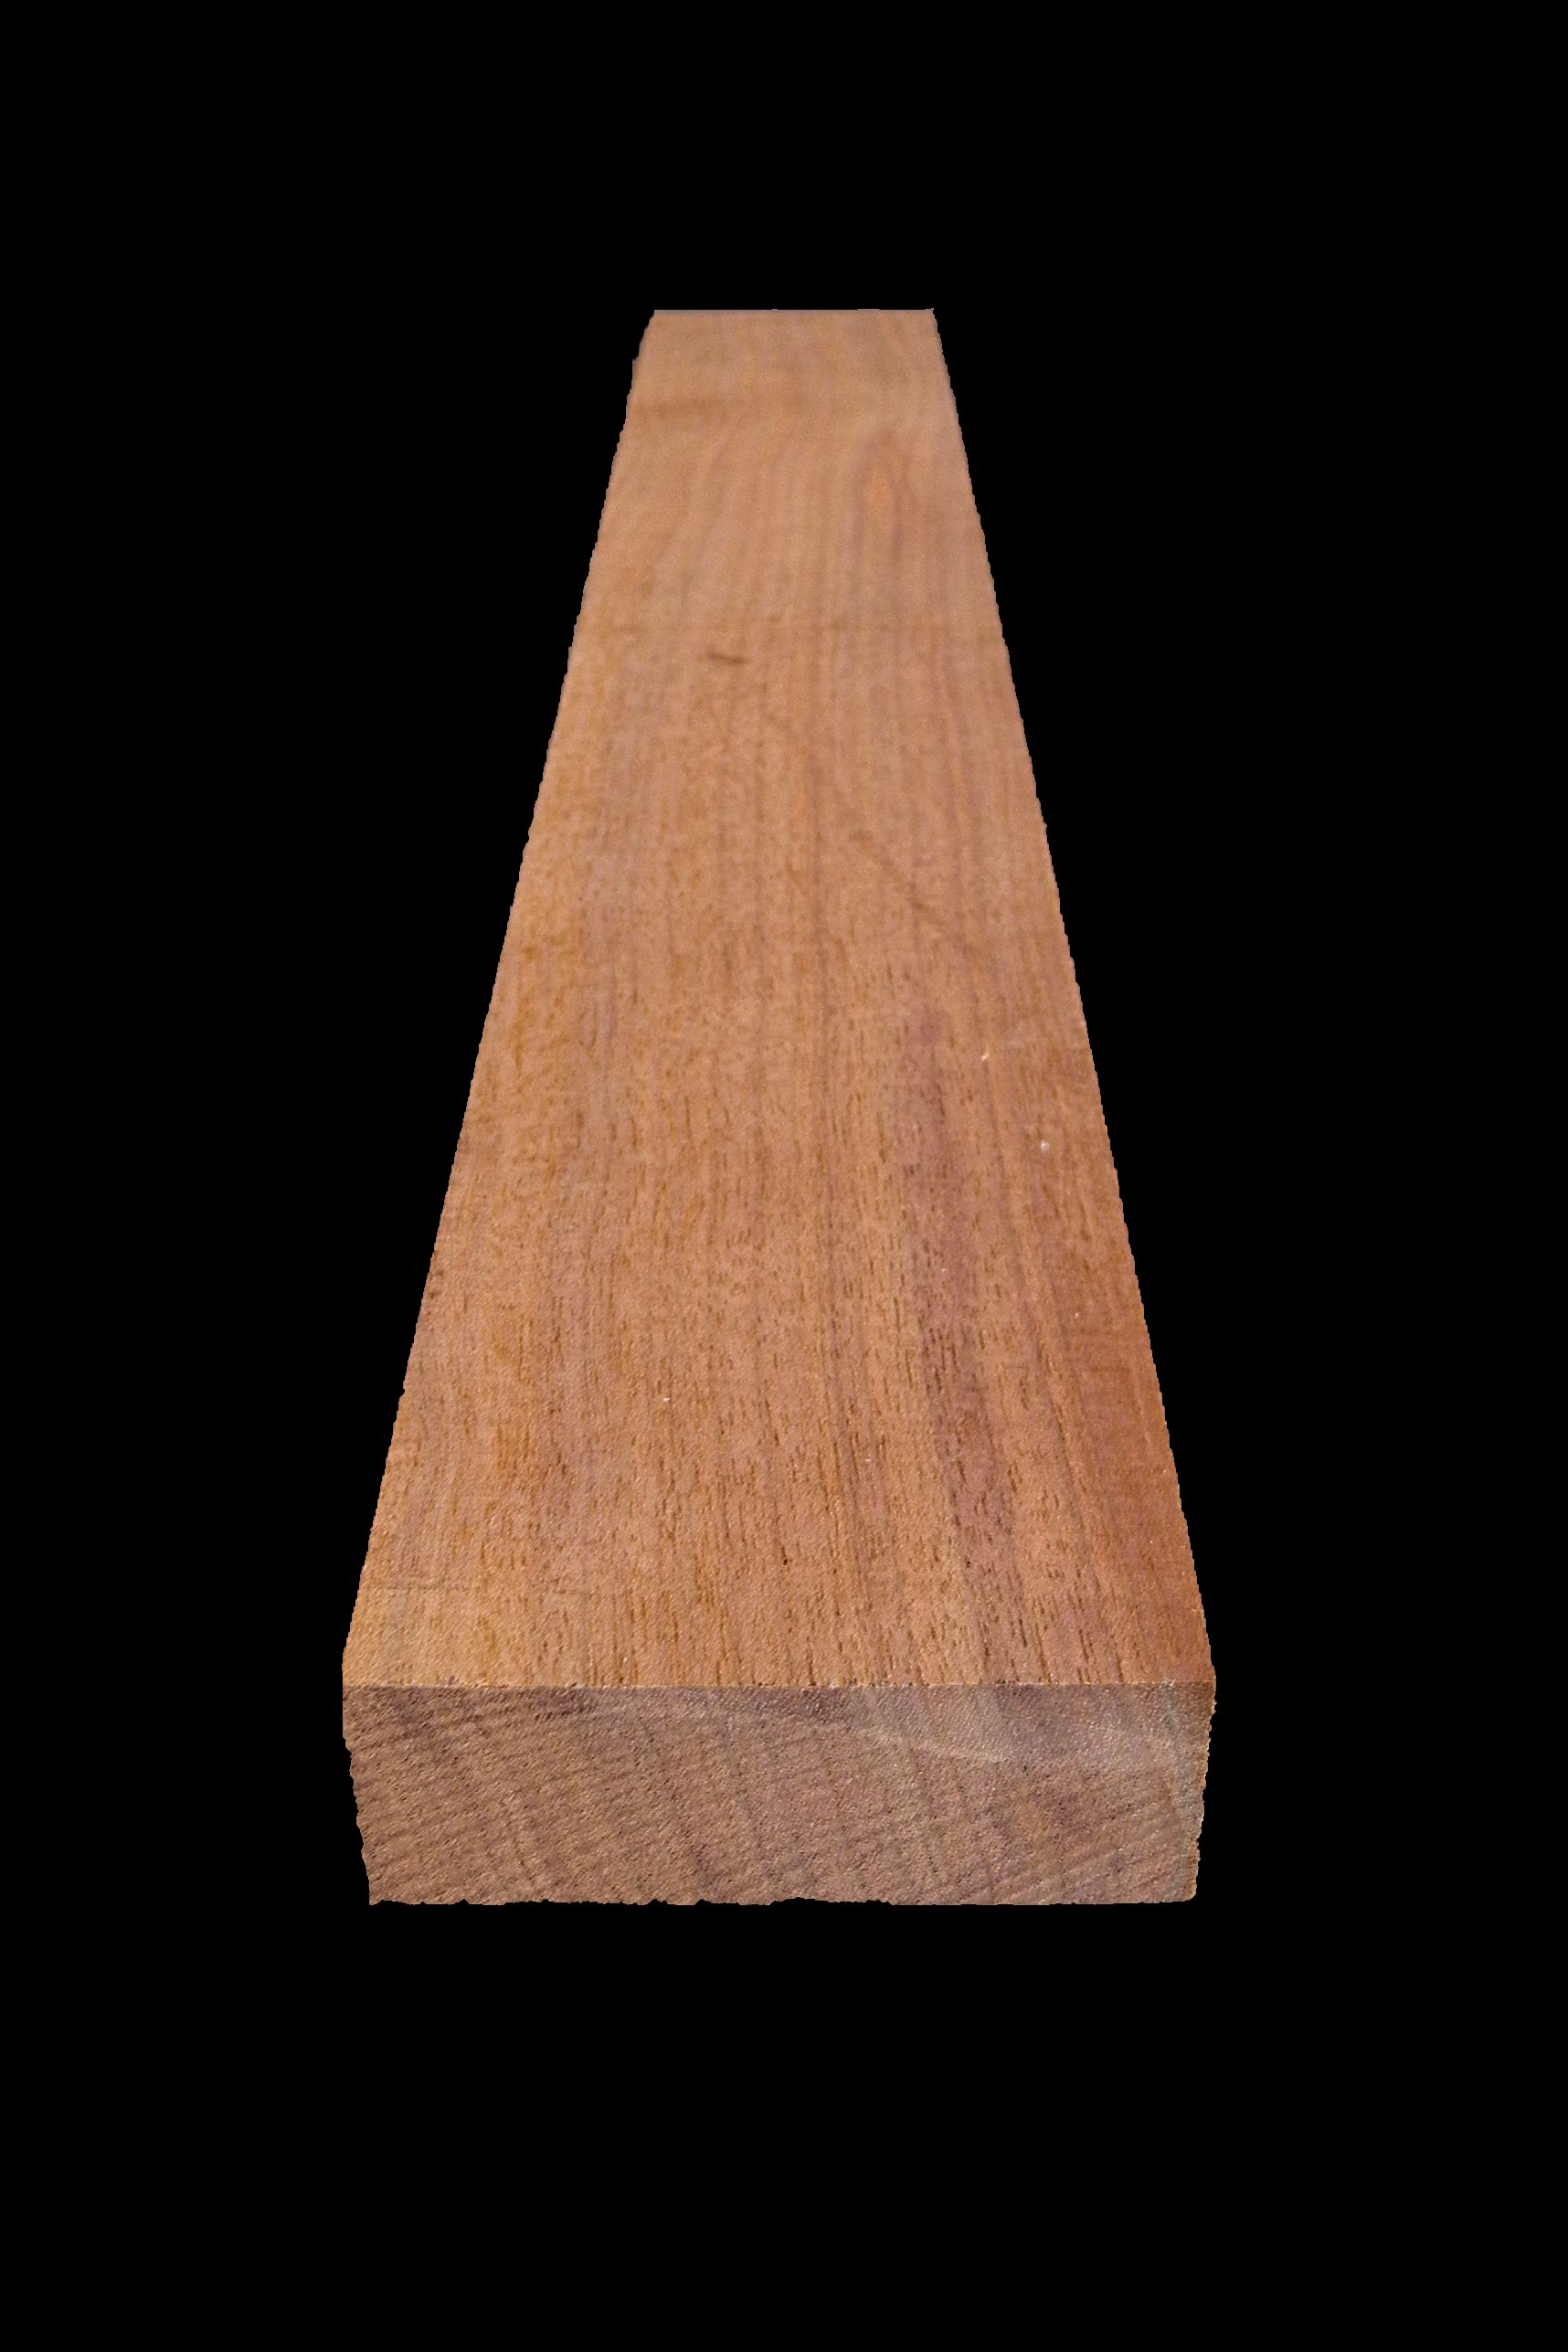 Walnut 1 x 3 Neck Blanks